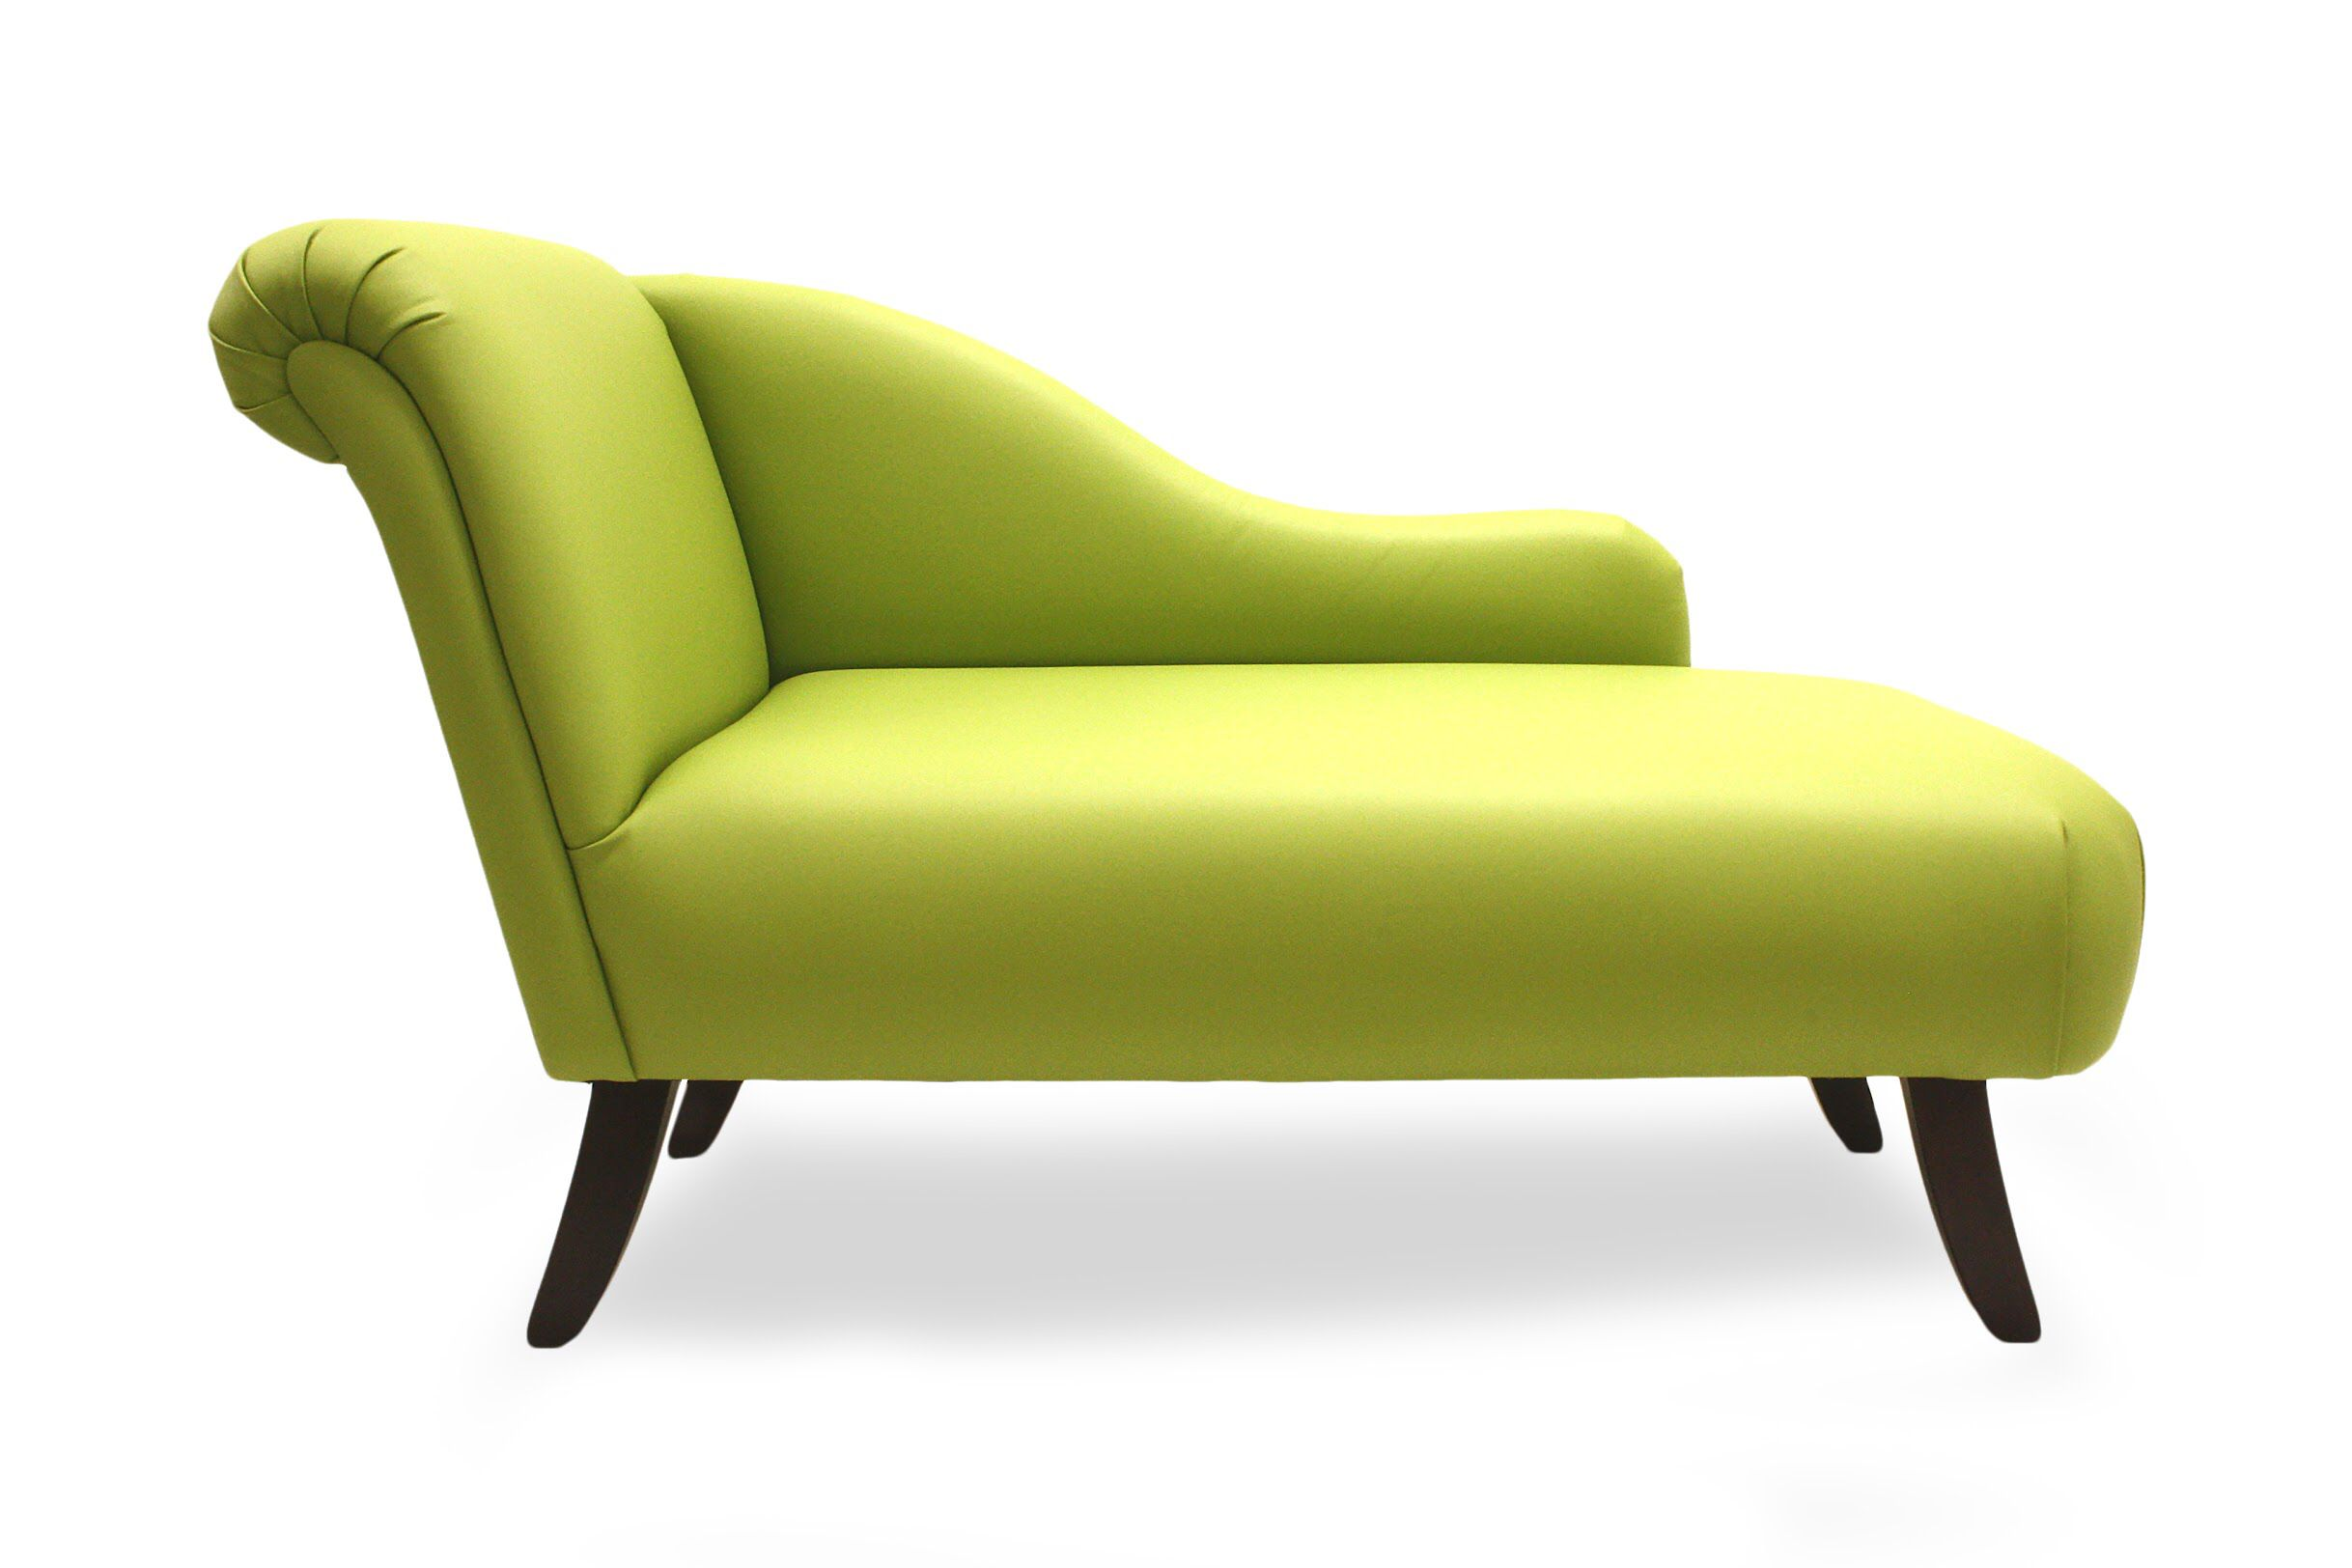 Pin On Chaise Longue